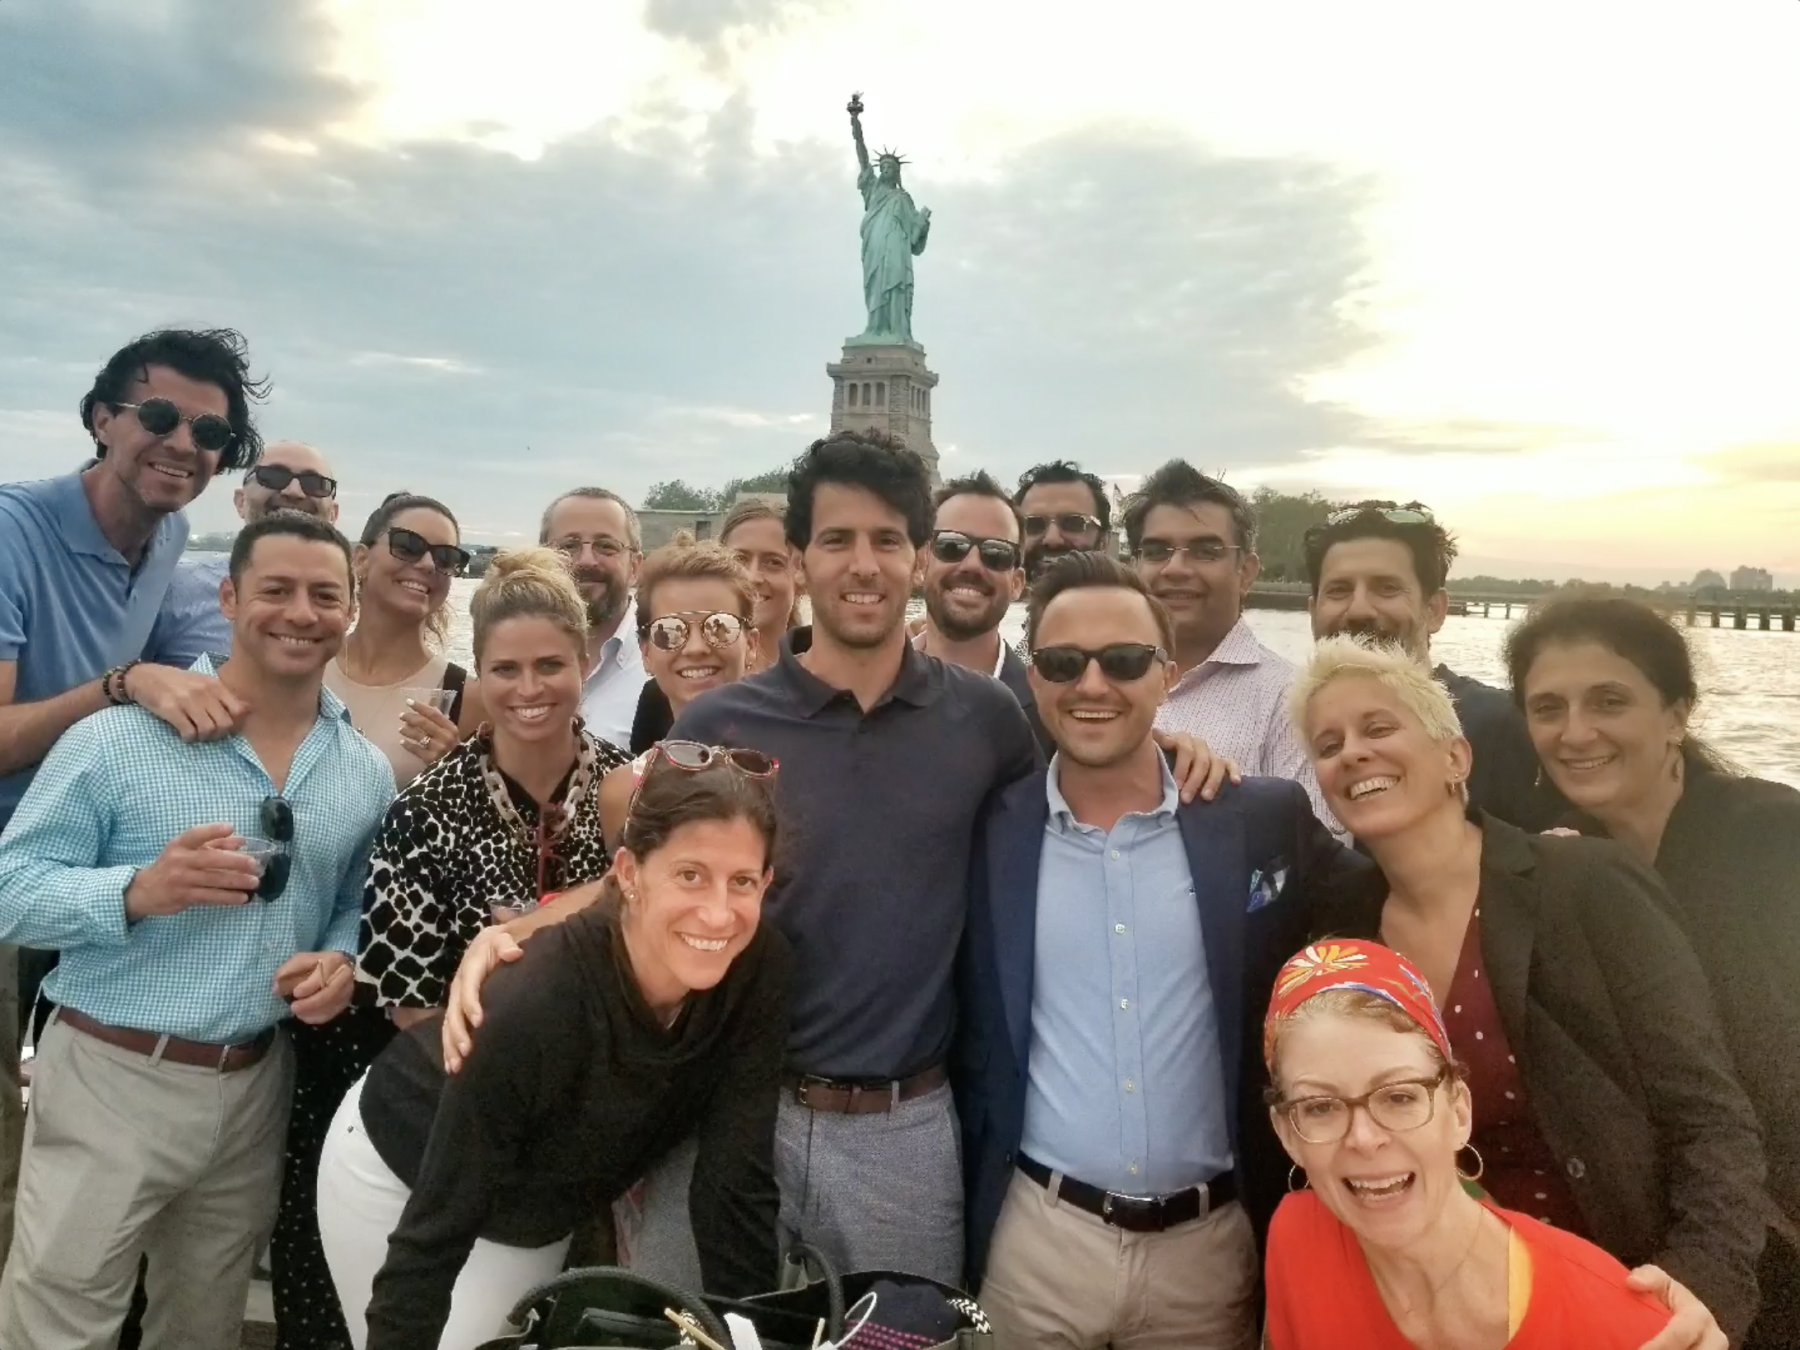 NYCHG Meeting at Statue of Liberty, New York, NY